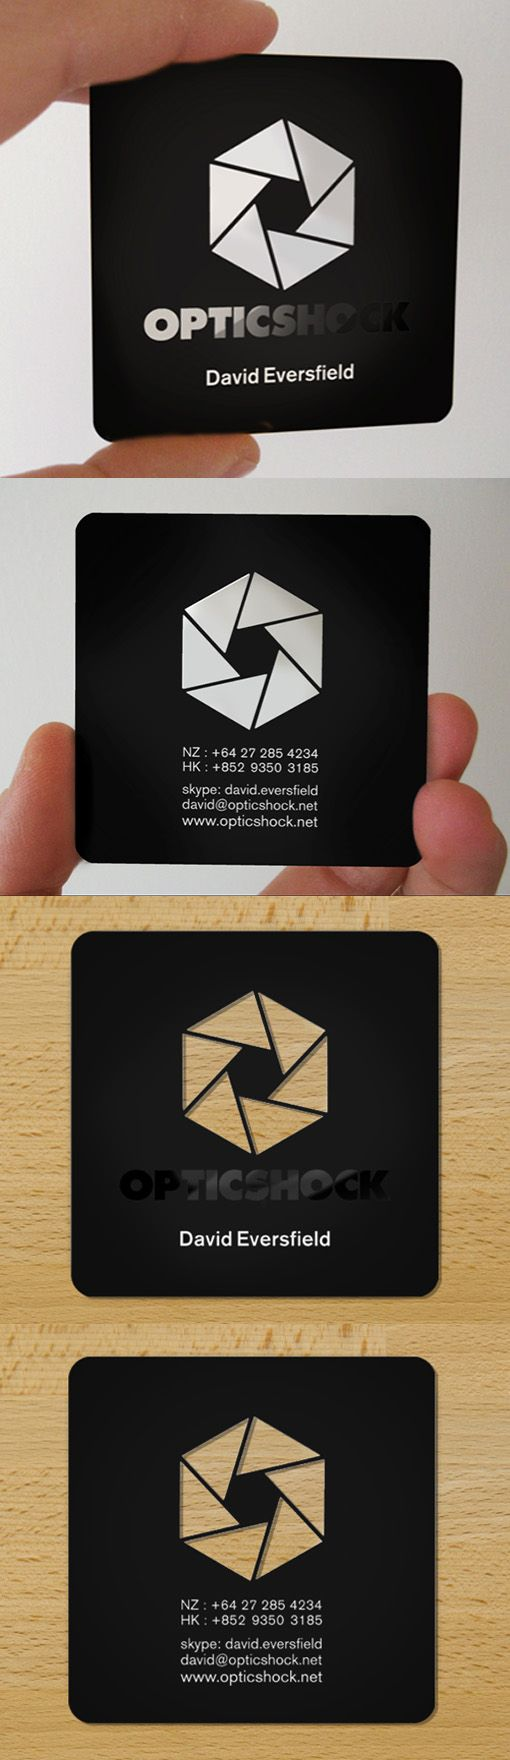 437 Best Business Card Images On Pinterest Business Card Design